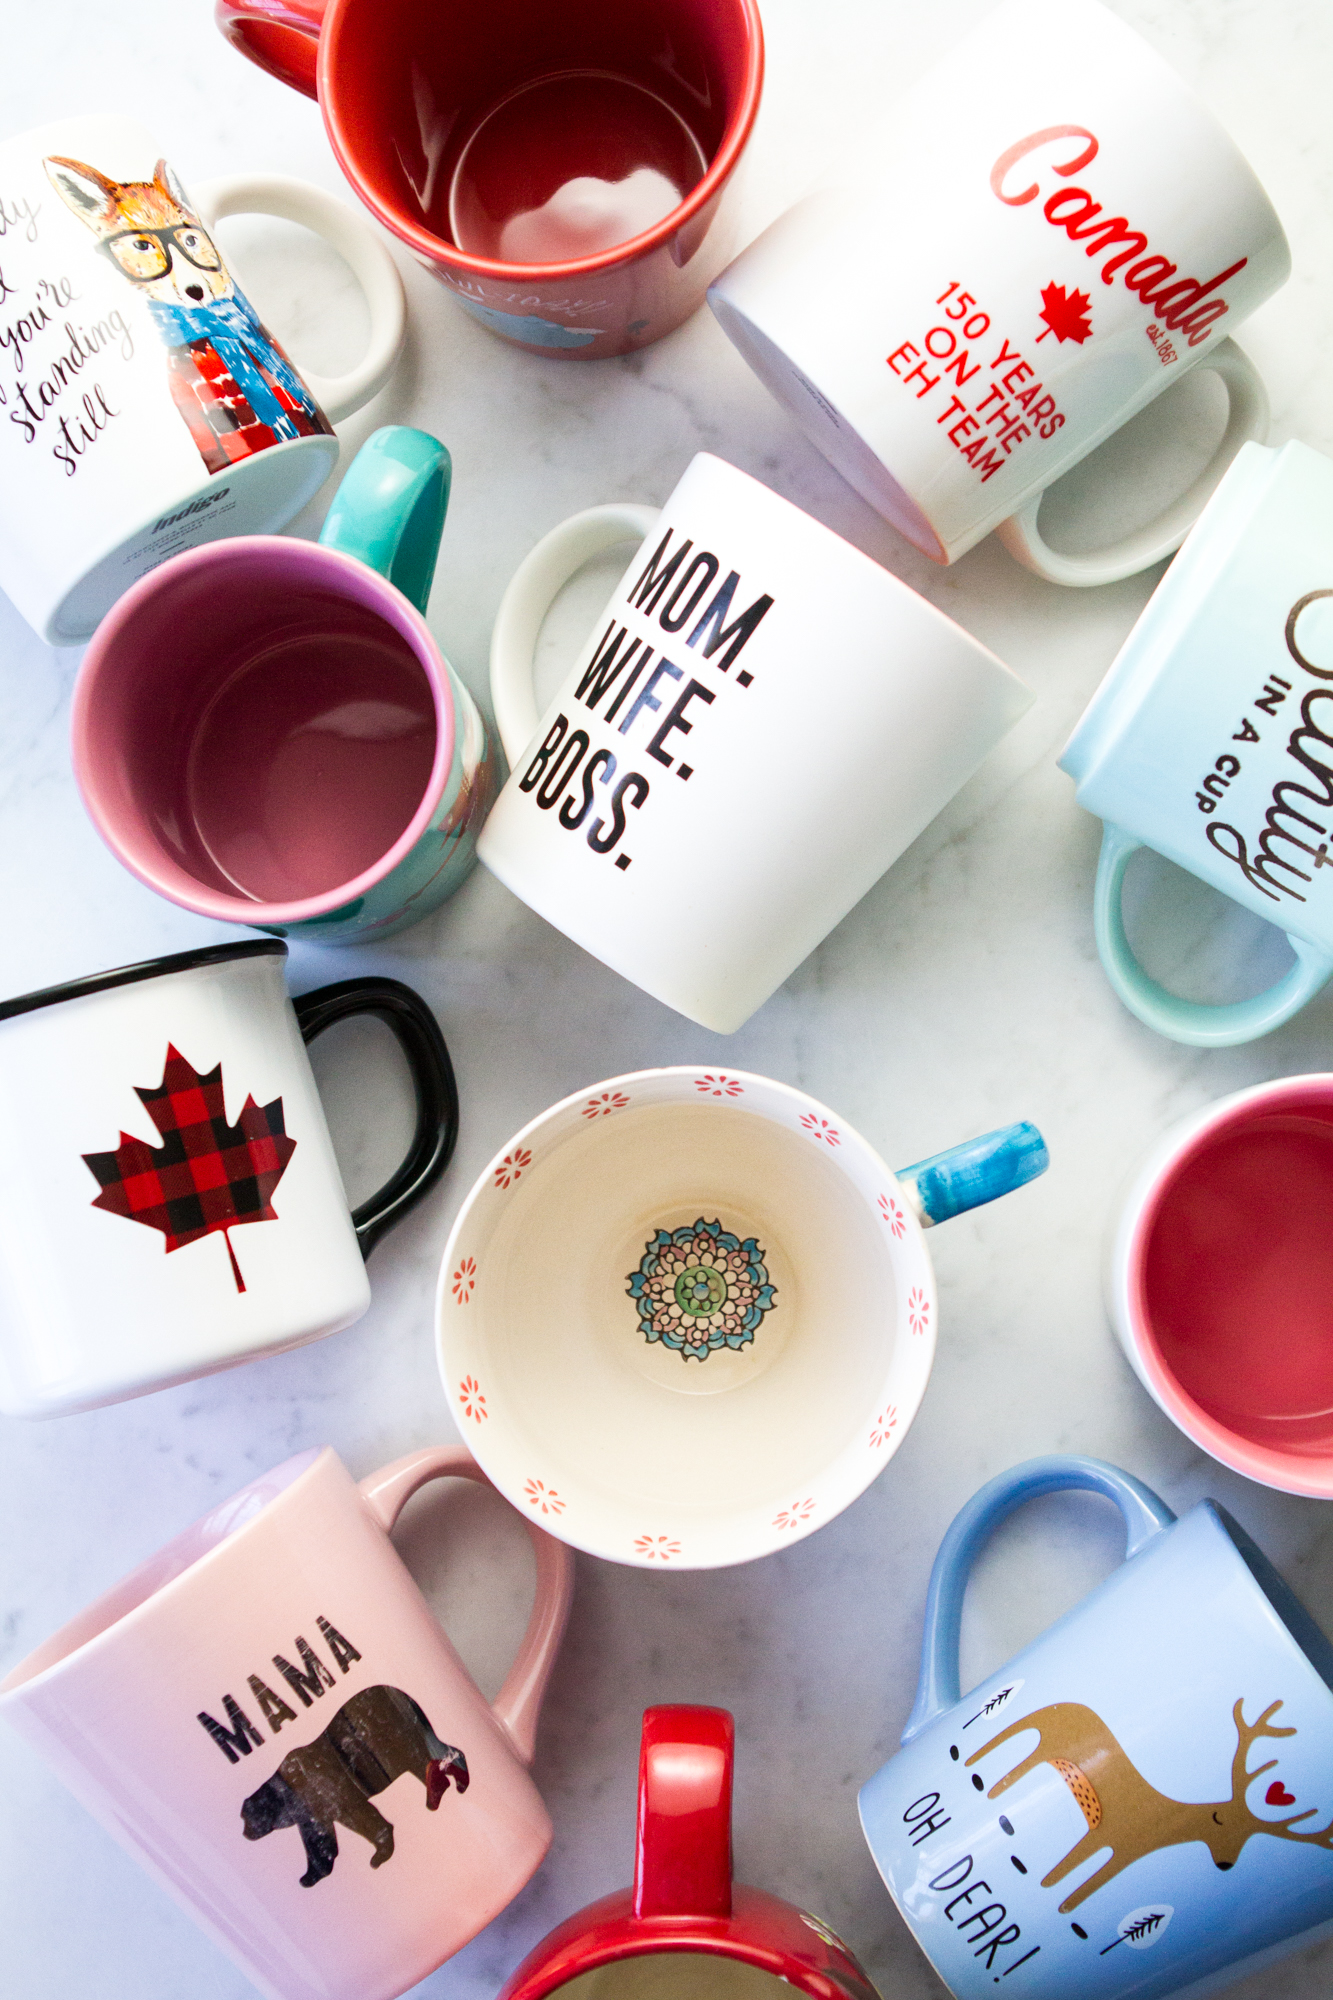 Crazy Mug Lady: A round-up of my fave mugs!